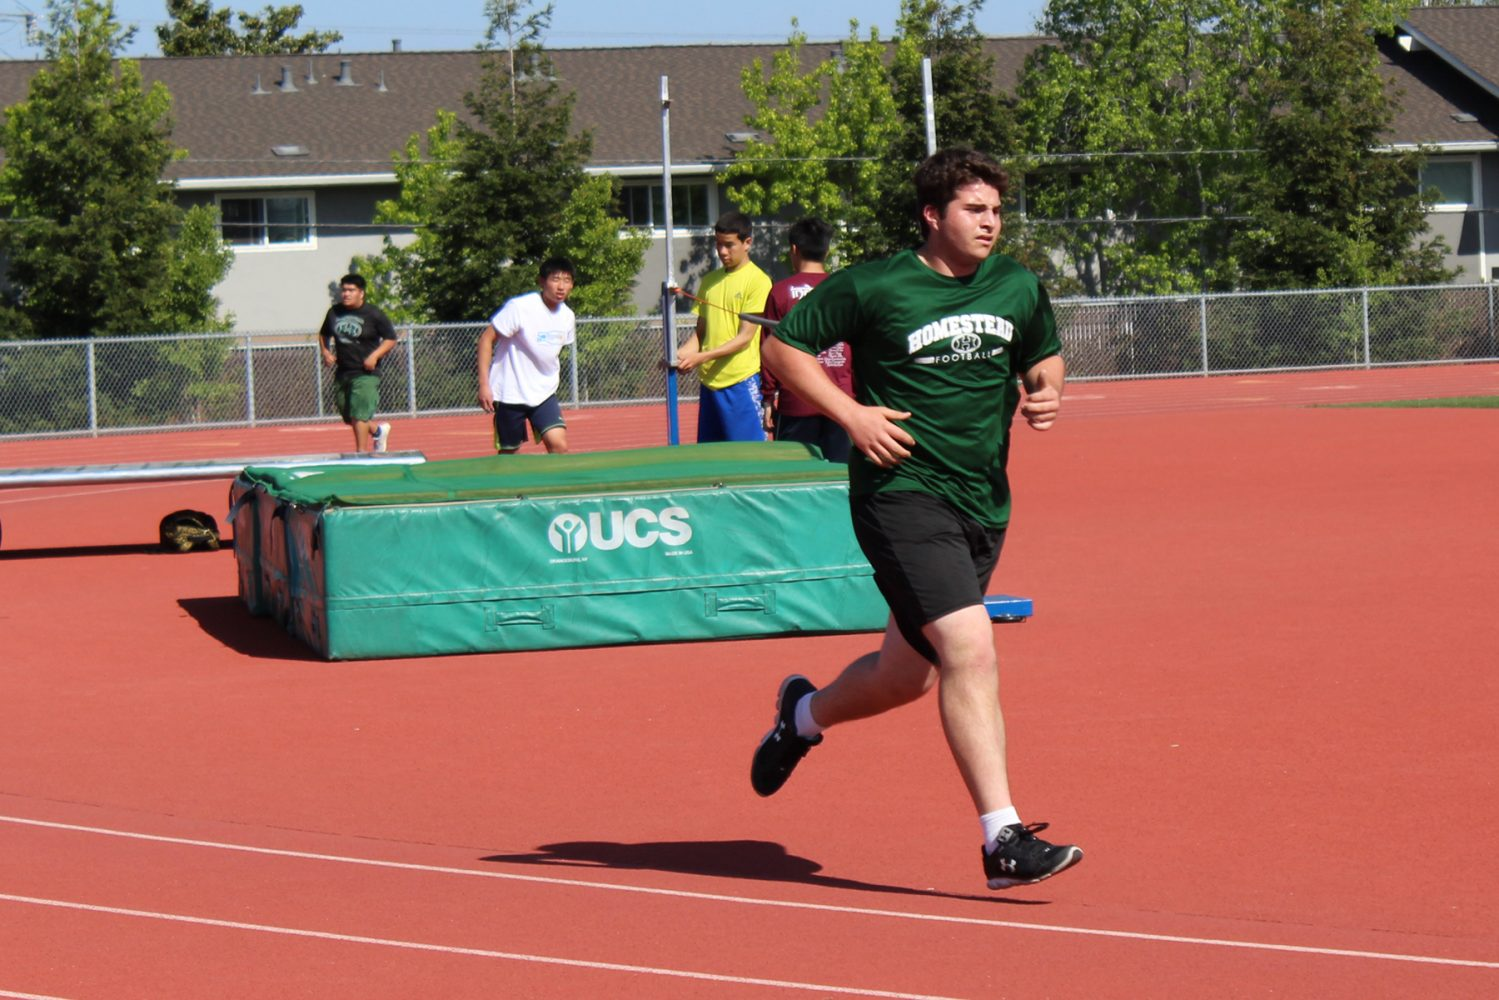 Players condition by running a mile during the practice.